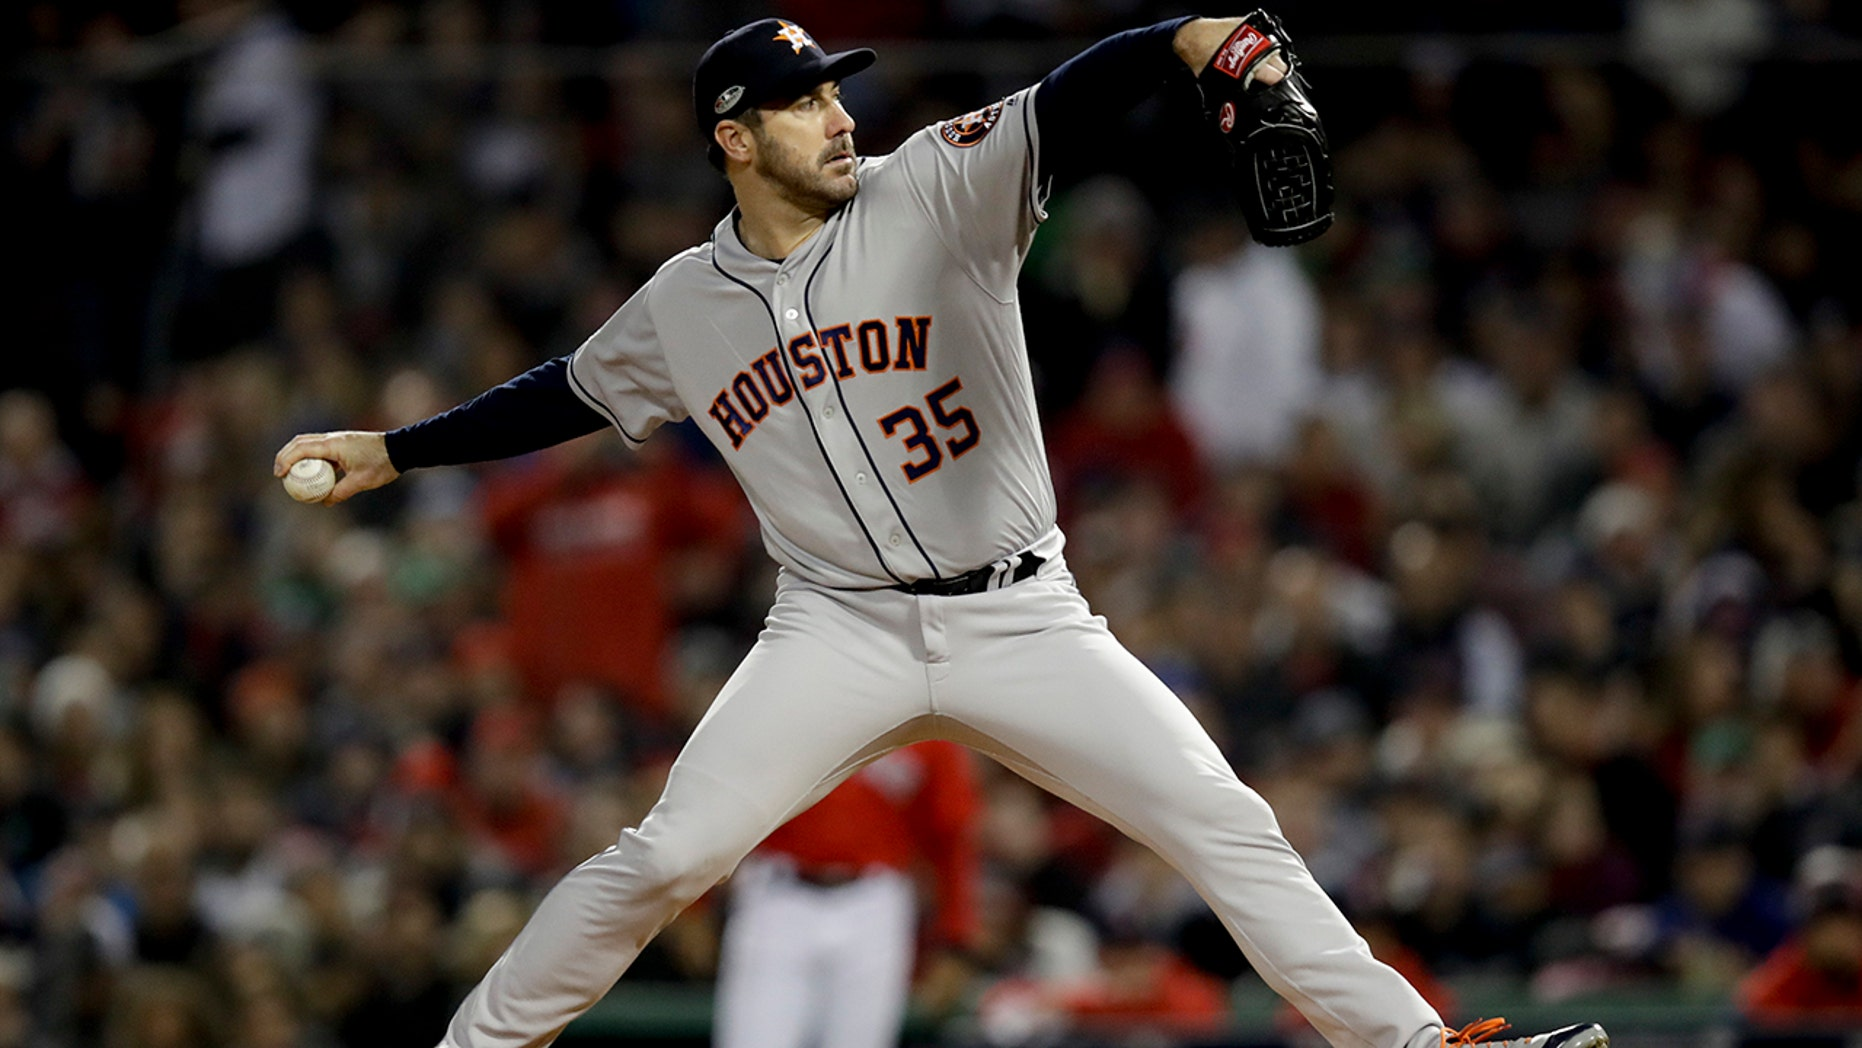 Chris Sale released from hospital, will join team in Houston on Tuesday